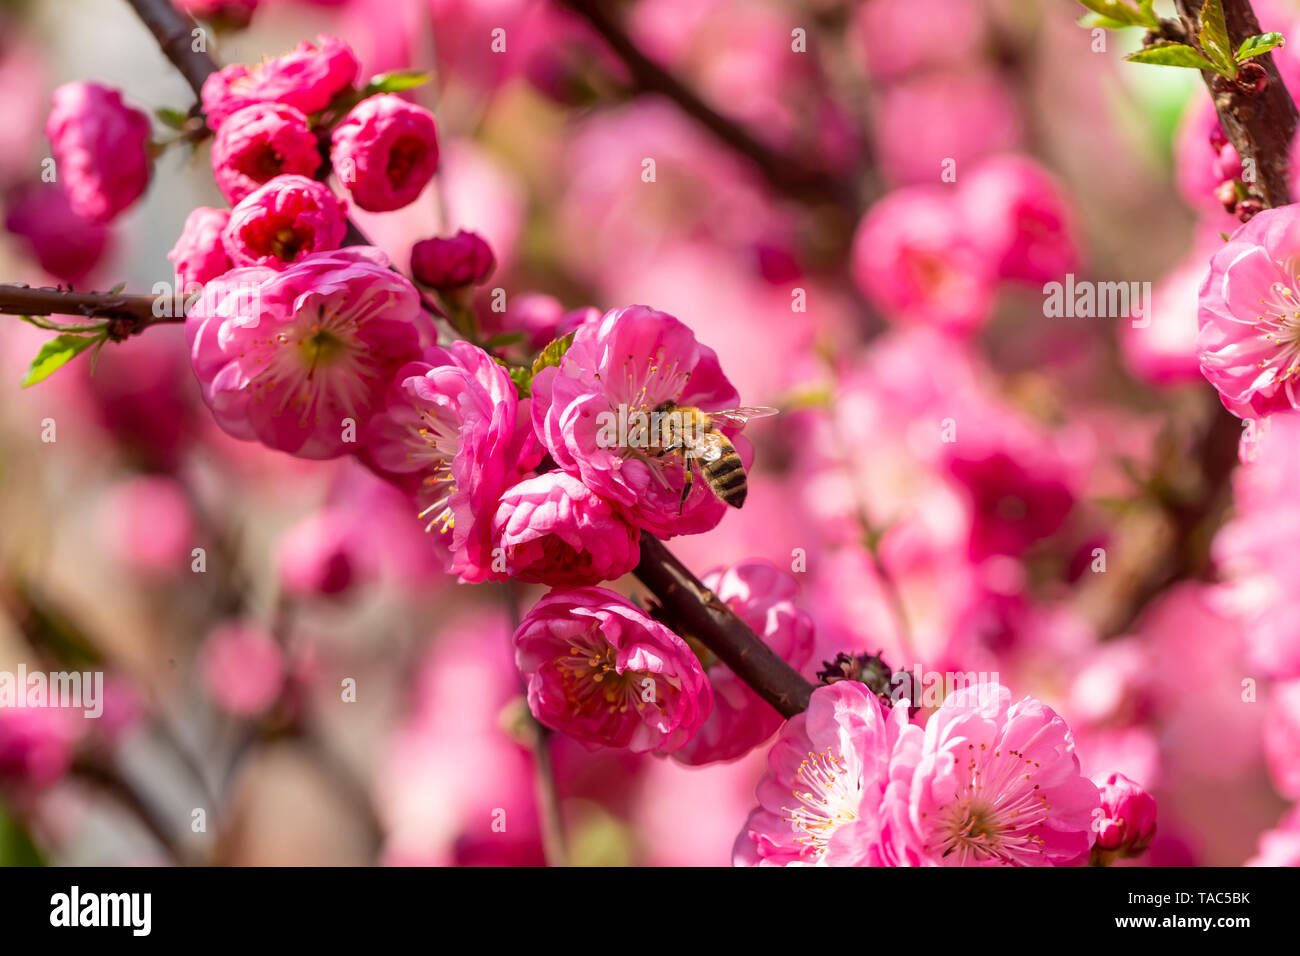 Bee on pink blossom of almond tree with - Stock Image